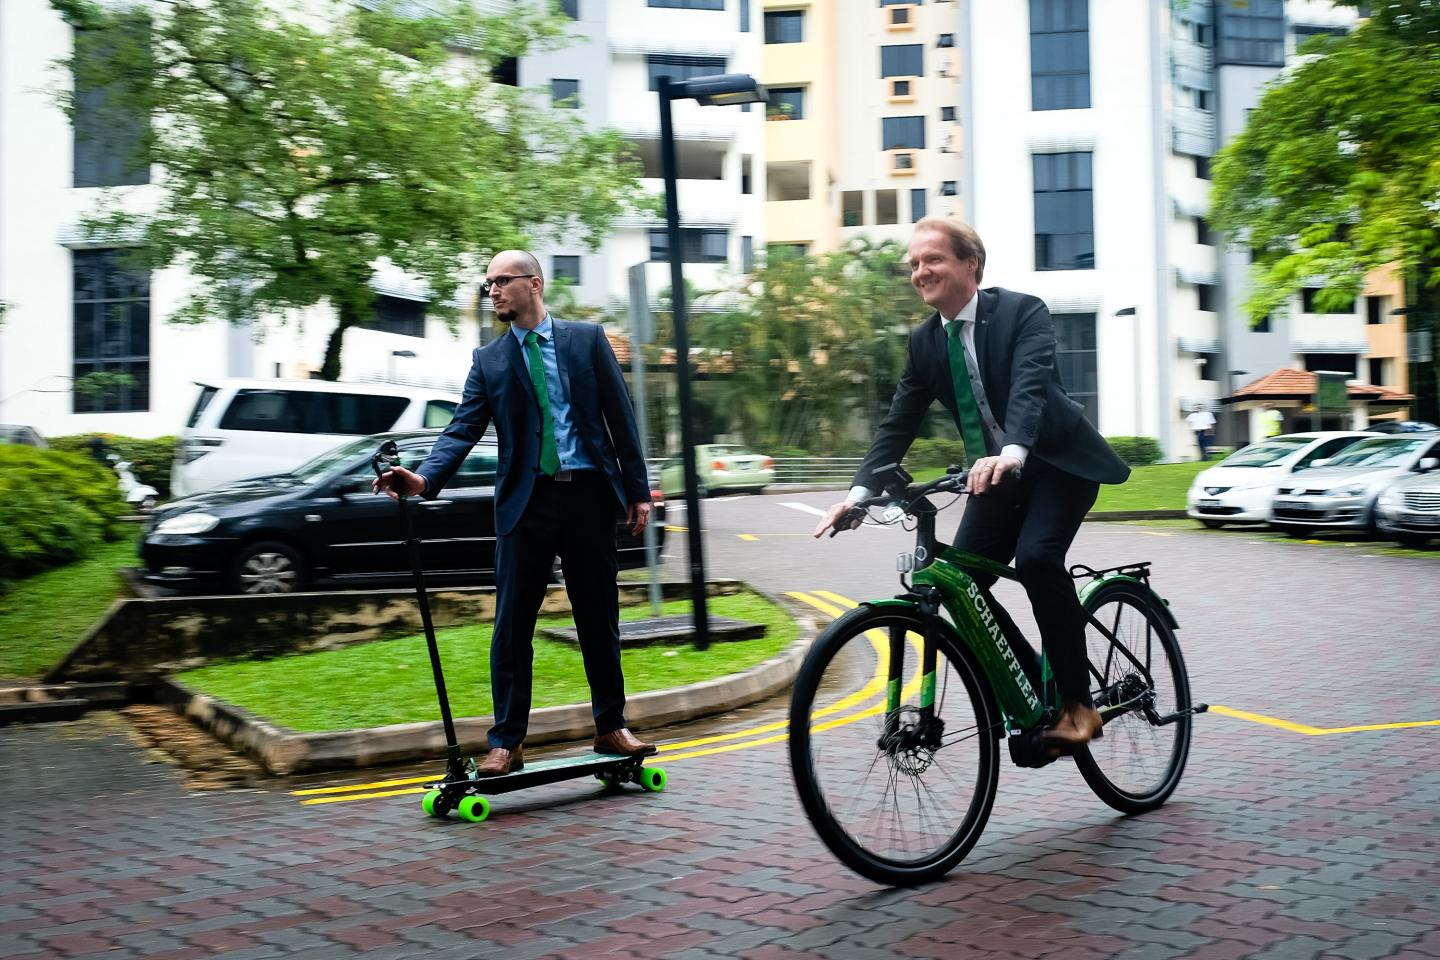 Dr. Marcel Mayer on the Prototype Eboard and Andreas Schick on the Ebike